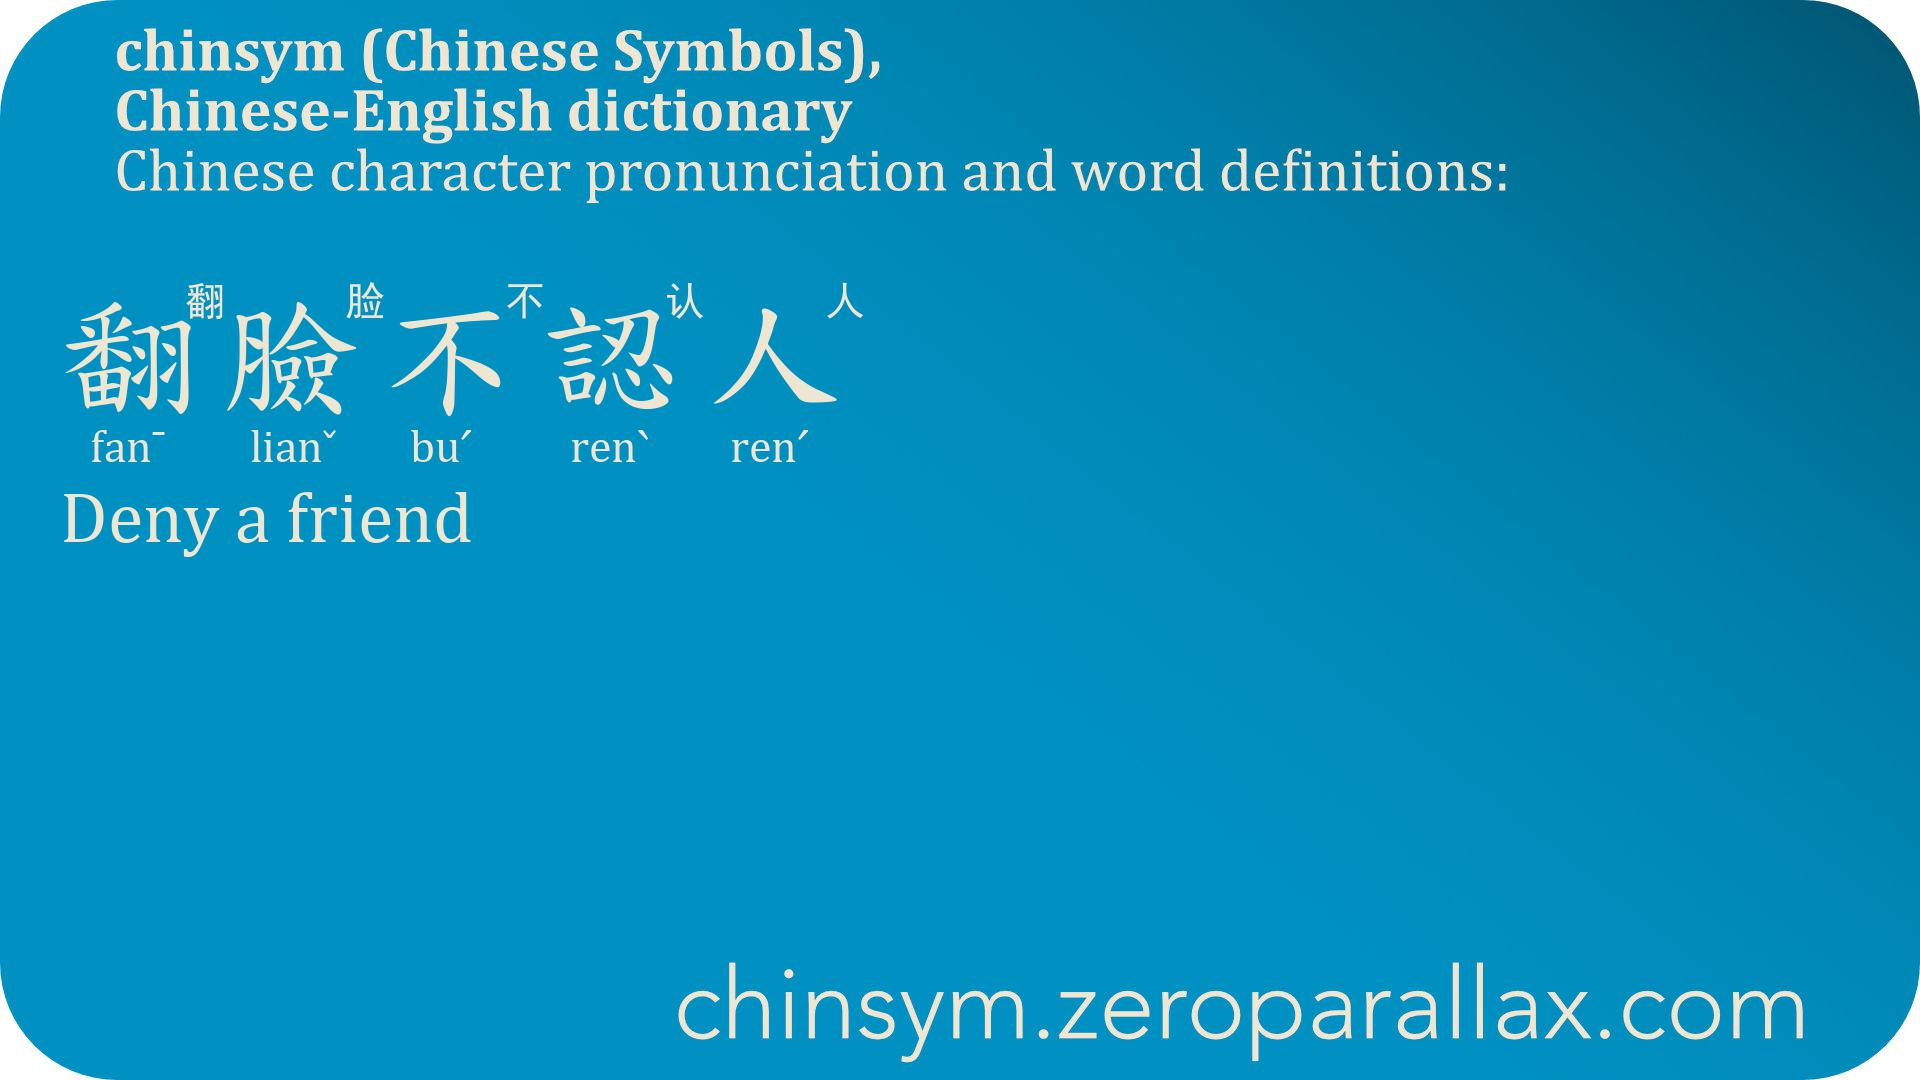 翻臉不認人  (fan¯ lianˇ buˊ renˋ renˊ) 翻脸不认人 : Deny a friend, Betray an old acquaintance. chinsym.zeroparallax.com